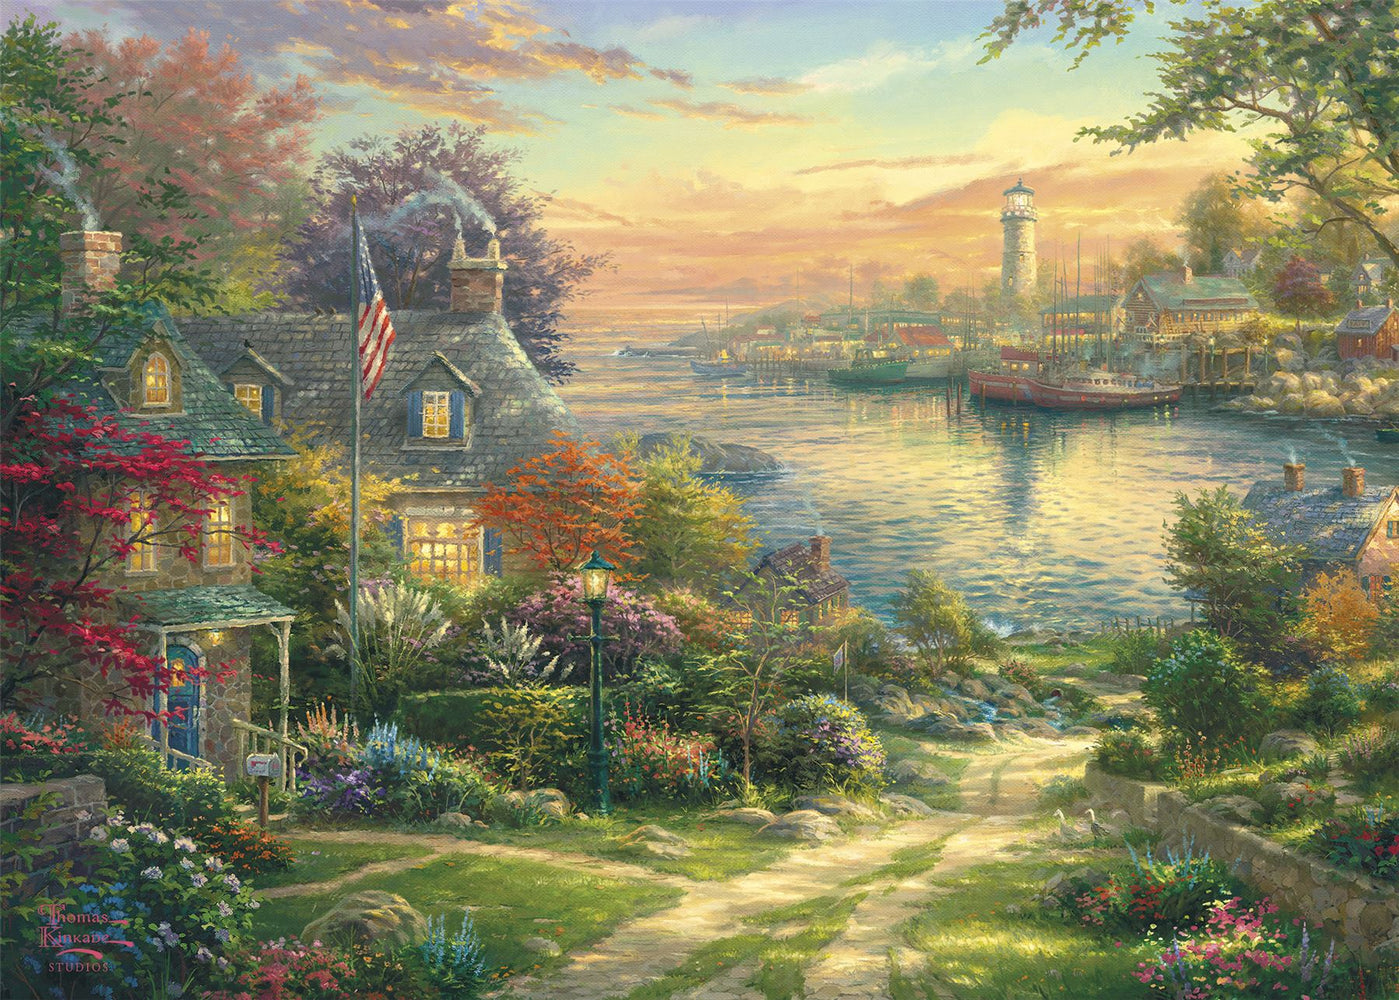 New 2020 Gibsons New England Harbour 1000 piece Jigsaw Puzzle - All Jigsaw Puzzles